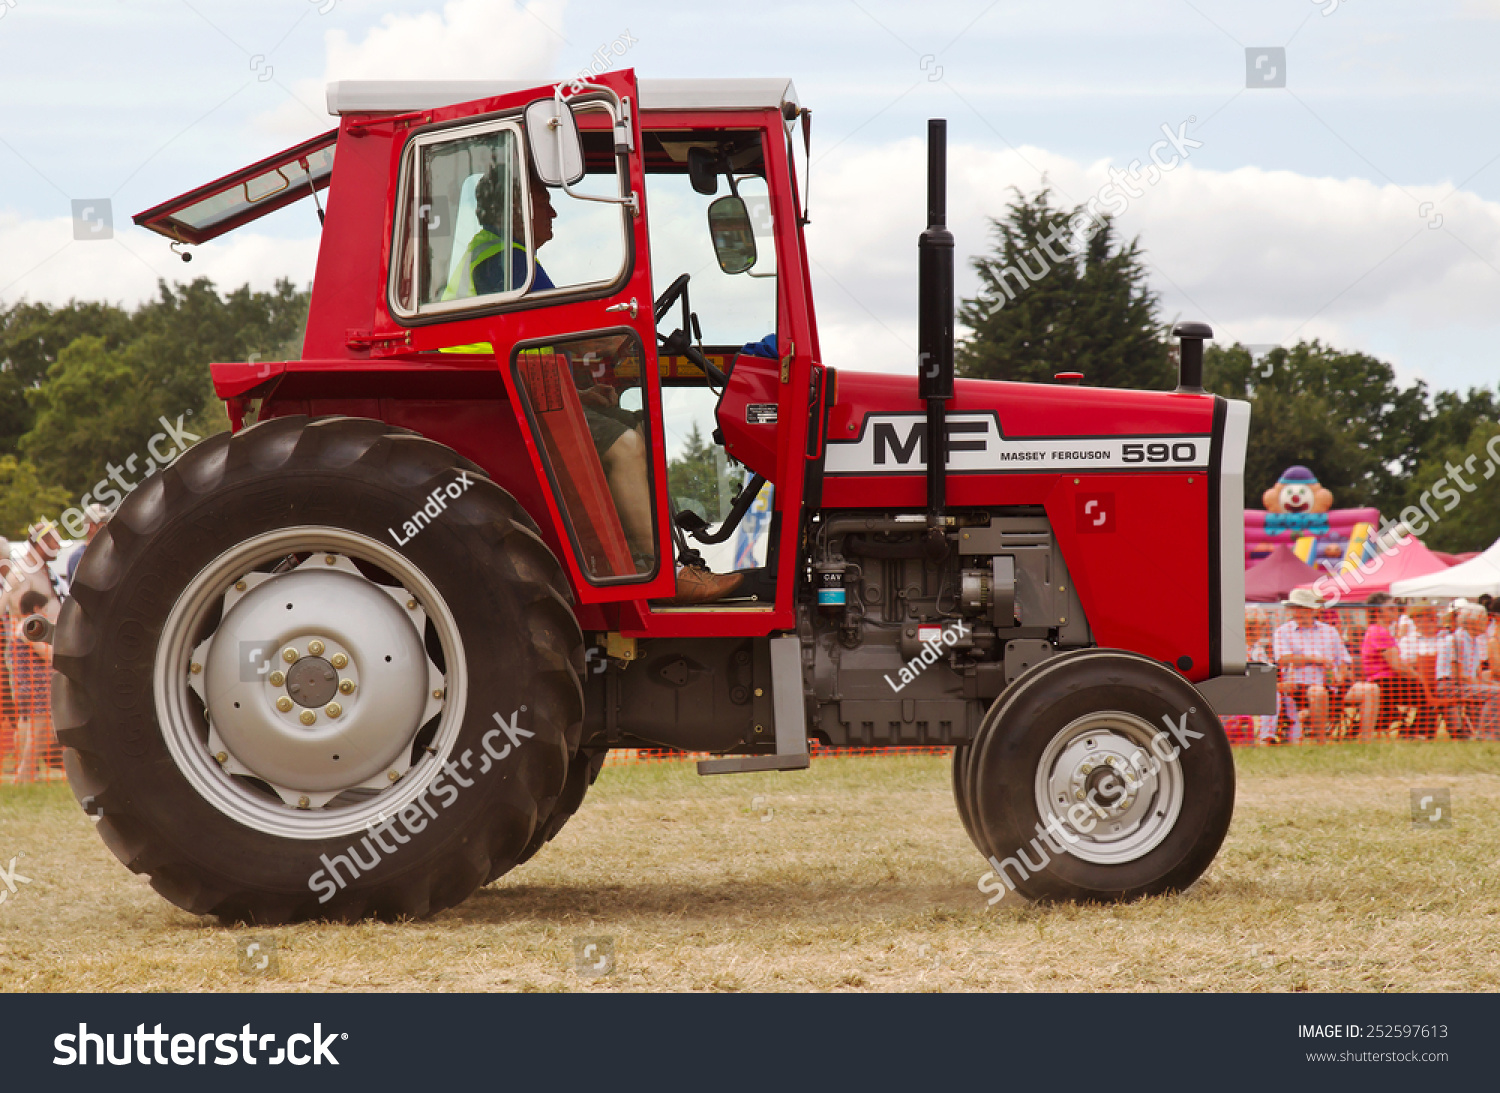 Paypromdeb we offer great selection massey ferguson tractor parts for your old vintage antique late model massey ferguson farm tractor fandeluxe Gallery